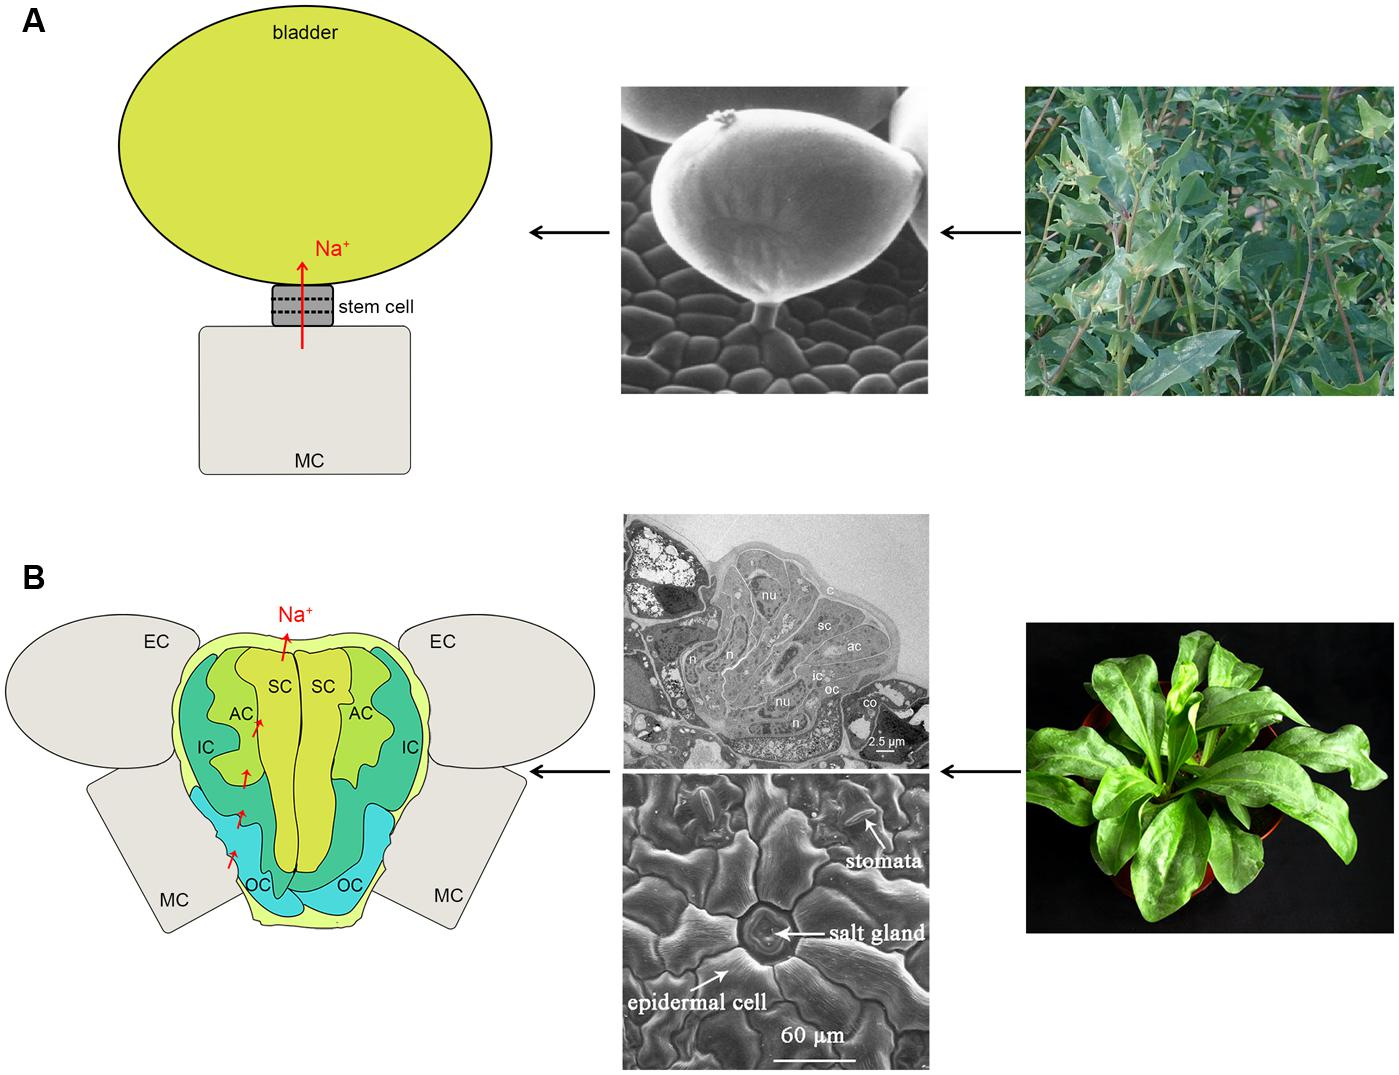 Frontiers Progress In Studying Salt Secretion From The Glands Animal Cells Moreover Carbon Cycle On Plant And Cell Diagram